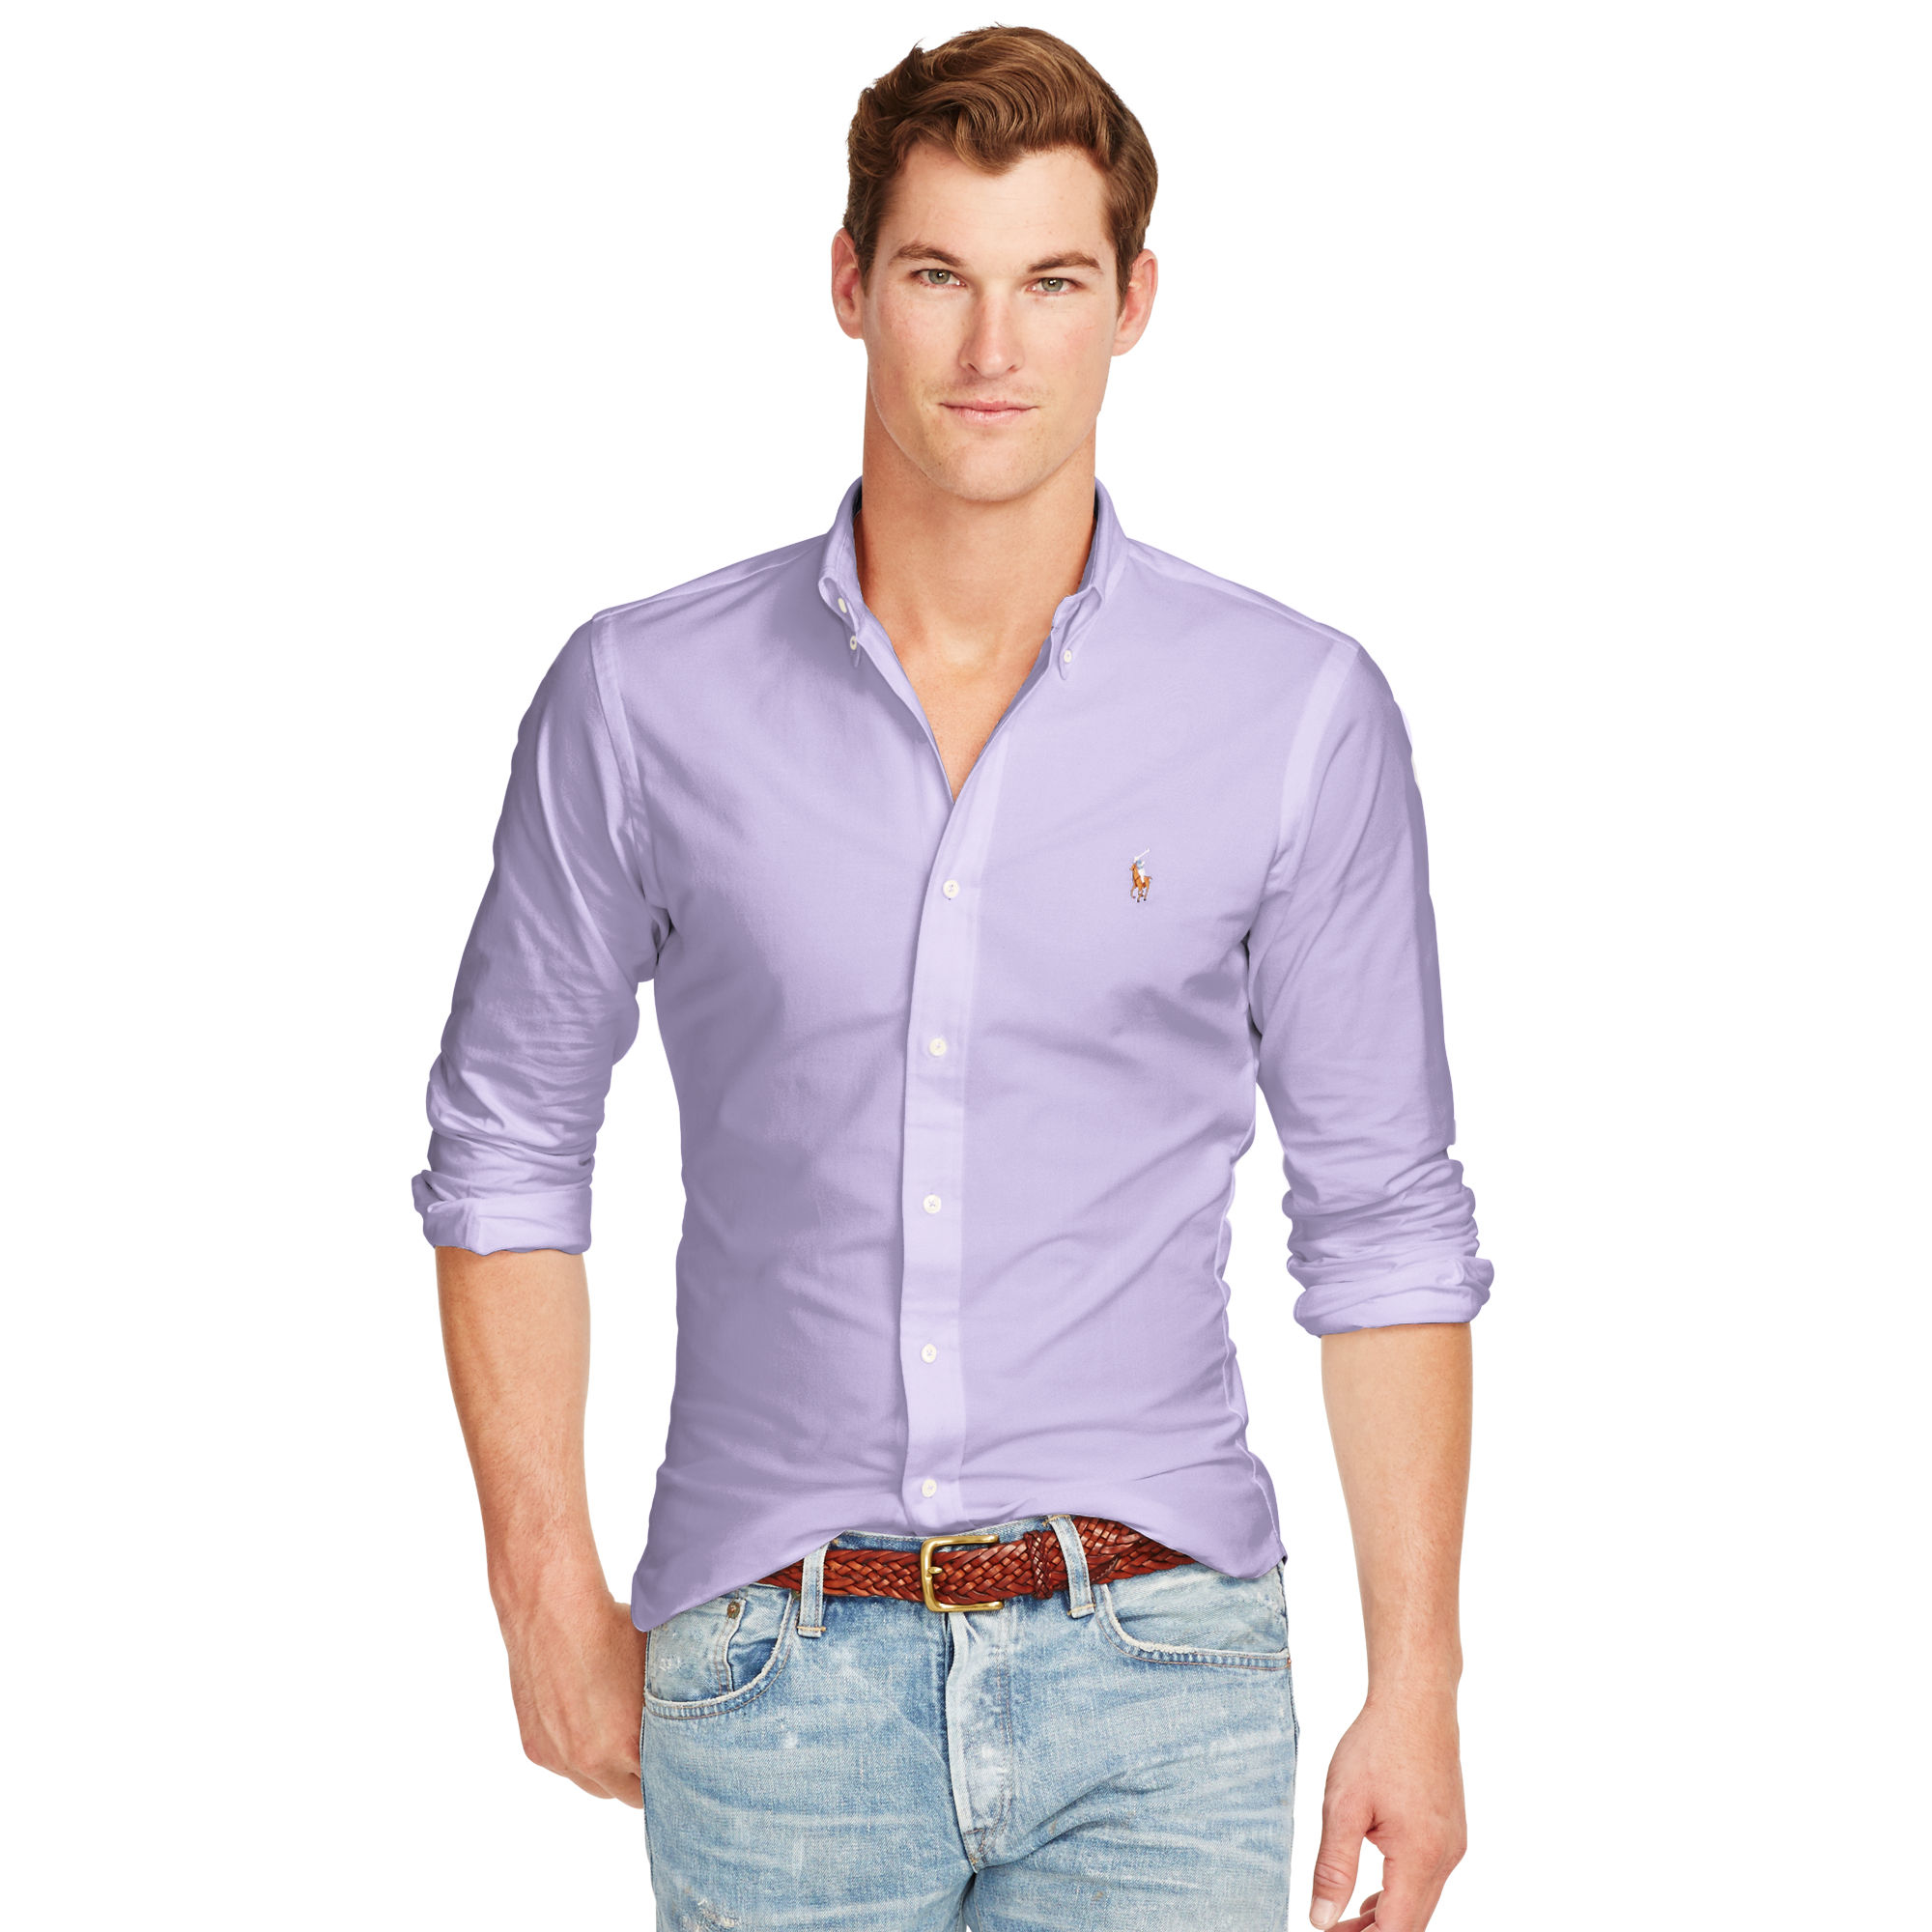 Polo ralph lauren slim fit stretch oxford shirt in purple for Slim fit collared shirts